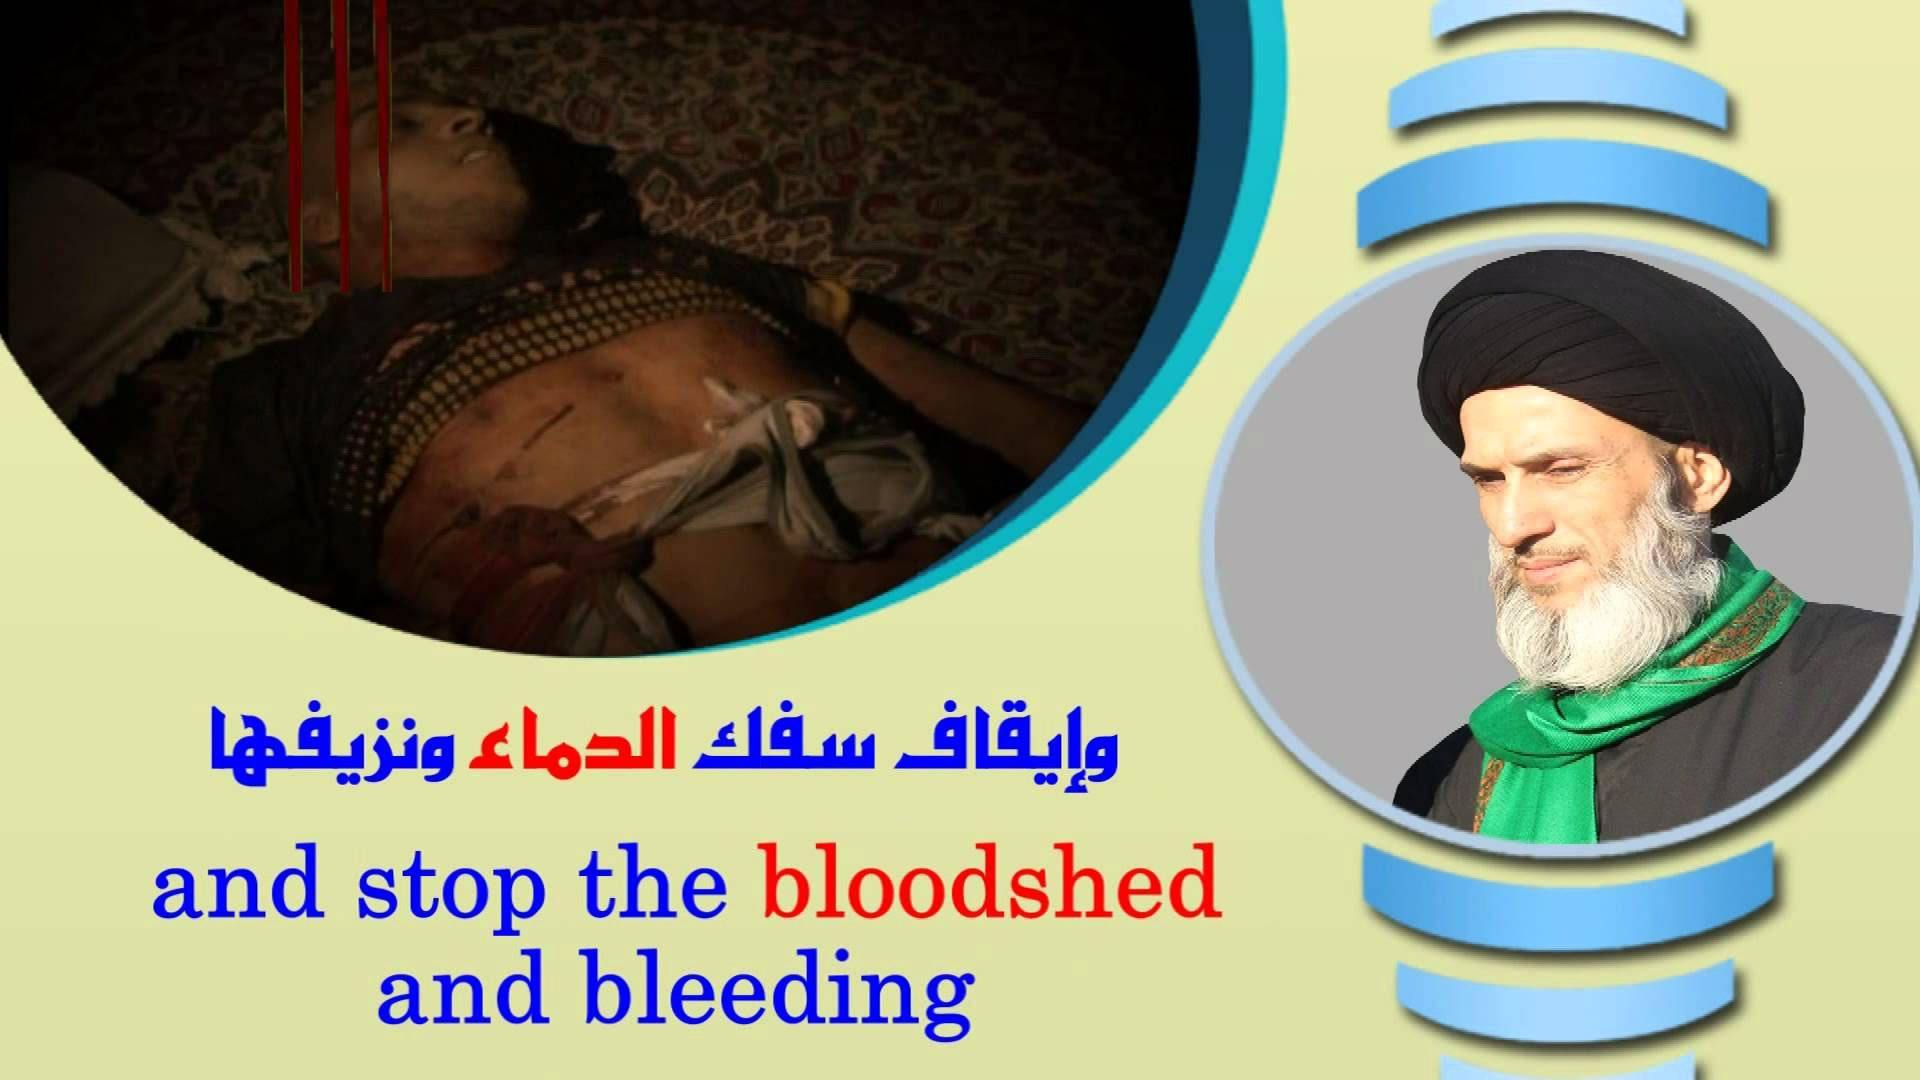 Week of Stop the bloodshed